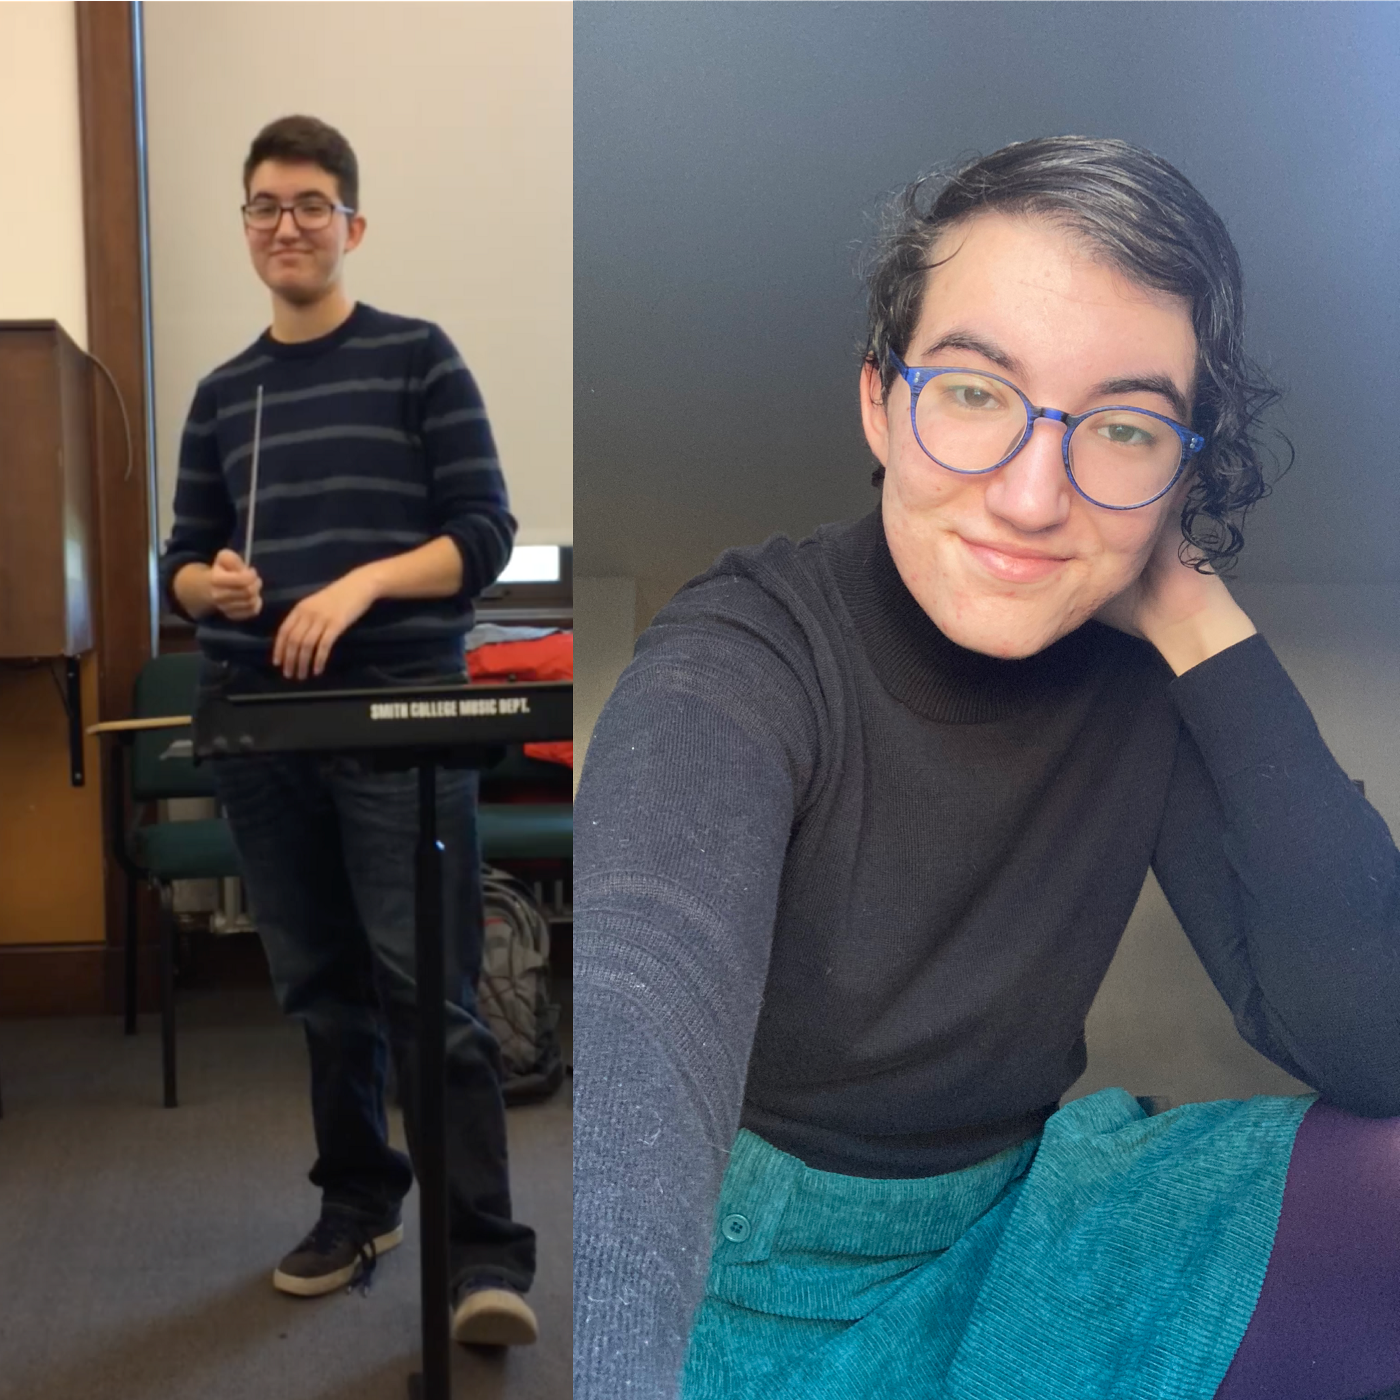 left, the author wears a striped sweater, baggy jeans. right, the author wears a teal corduroy skirt and black turtleneck.